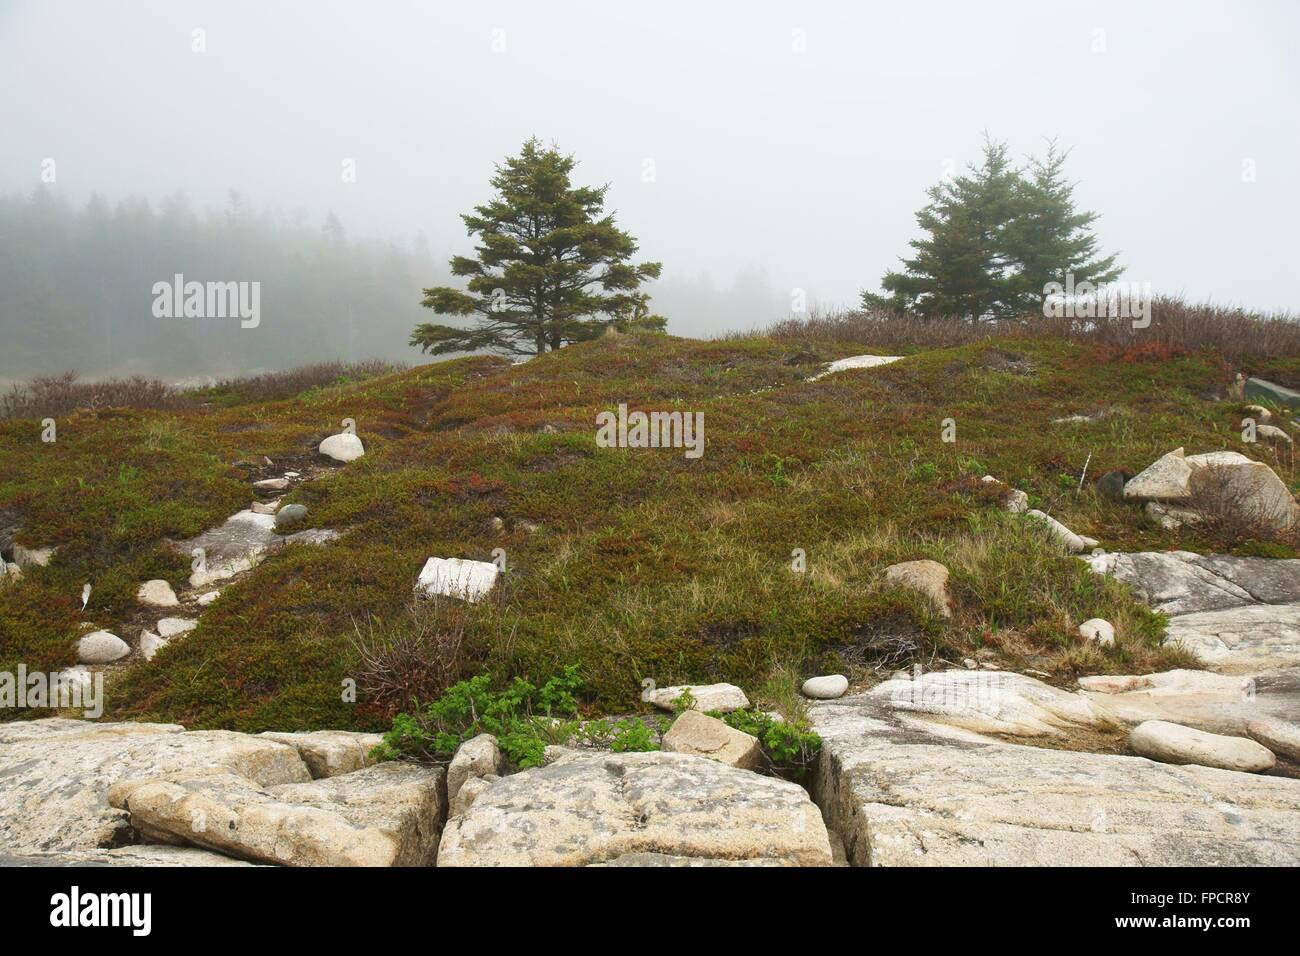 Foggy landscape with spruces and light boulders - Stock Image